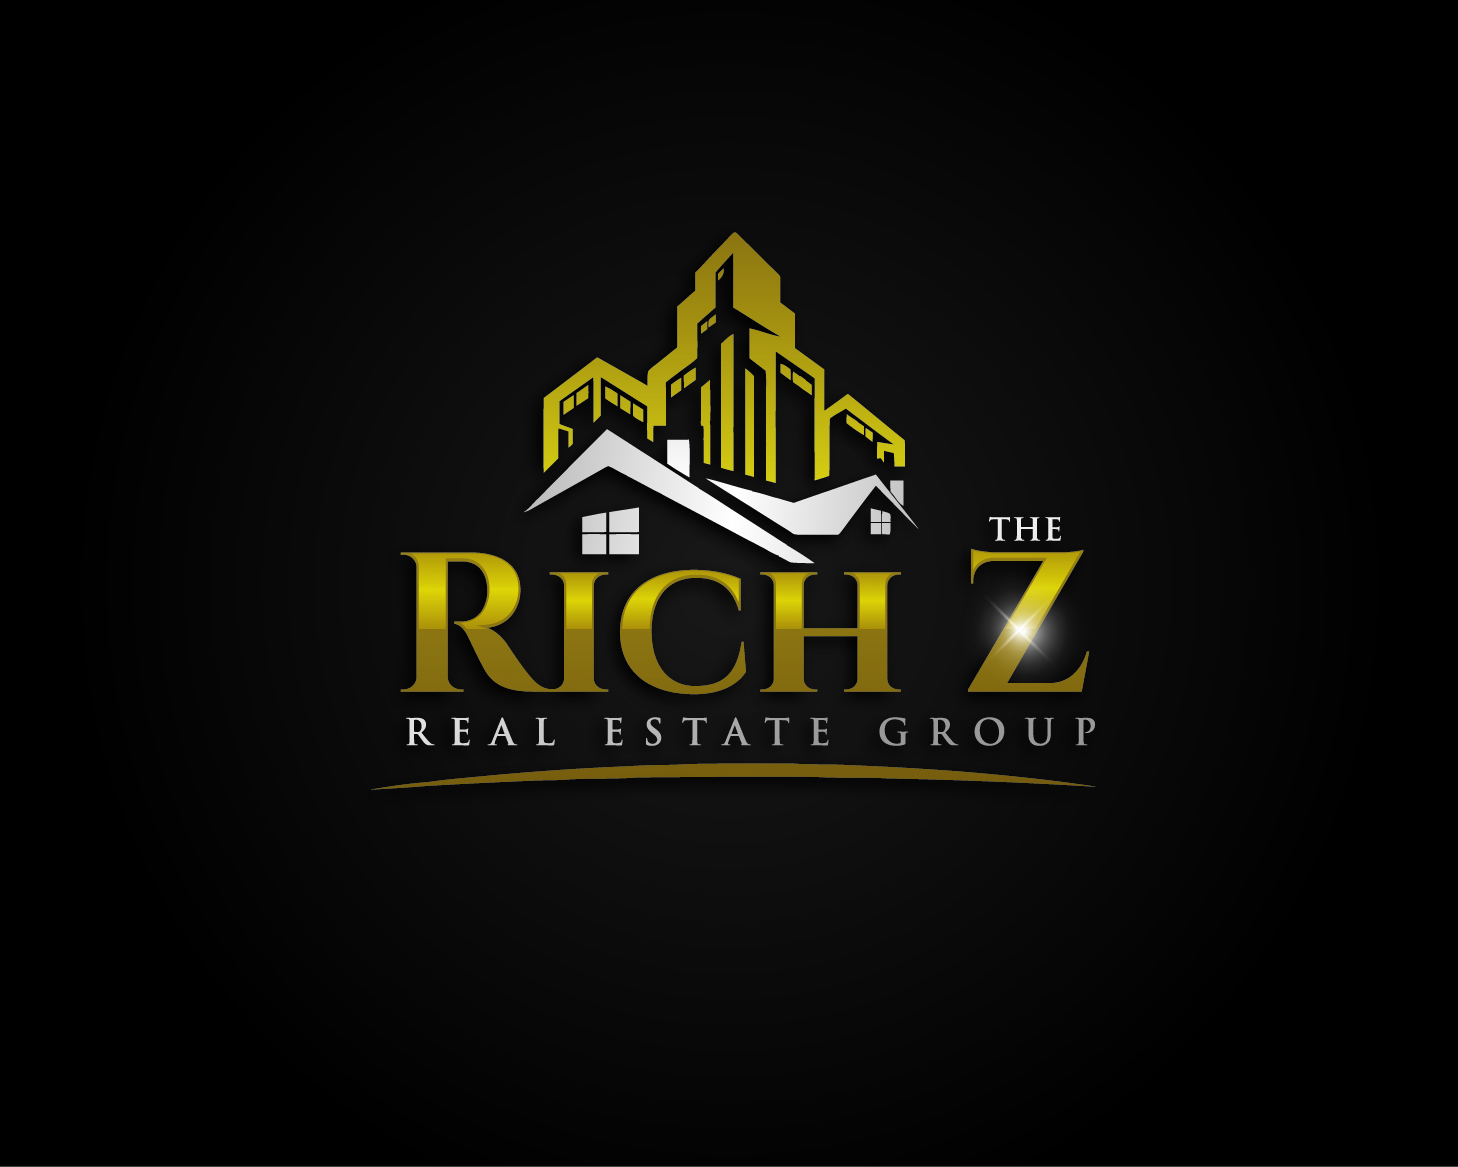 Logo Design by VENTSISLAV KOVACHEV - Entry No. 99 in the Logo Design Contest The Rich Z. Real Estate Group Logo Design.